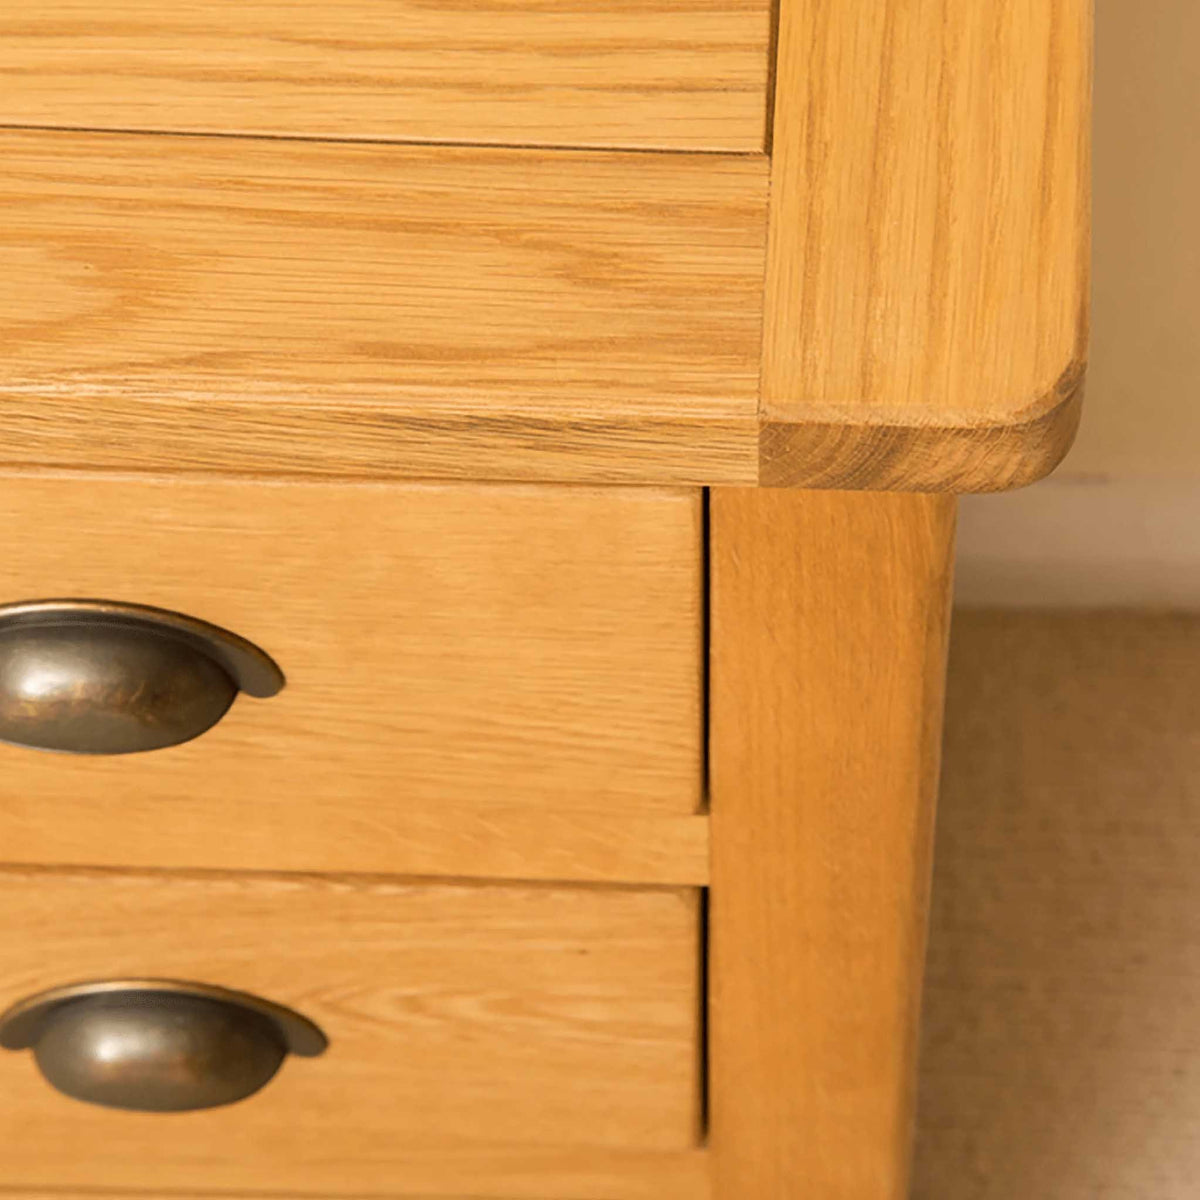 Top corner of Roseland Oak Bedside Table